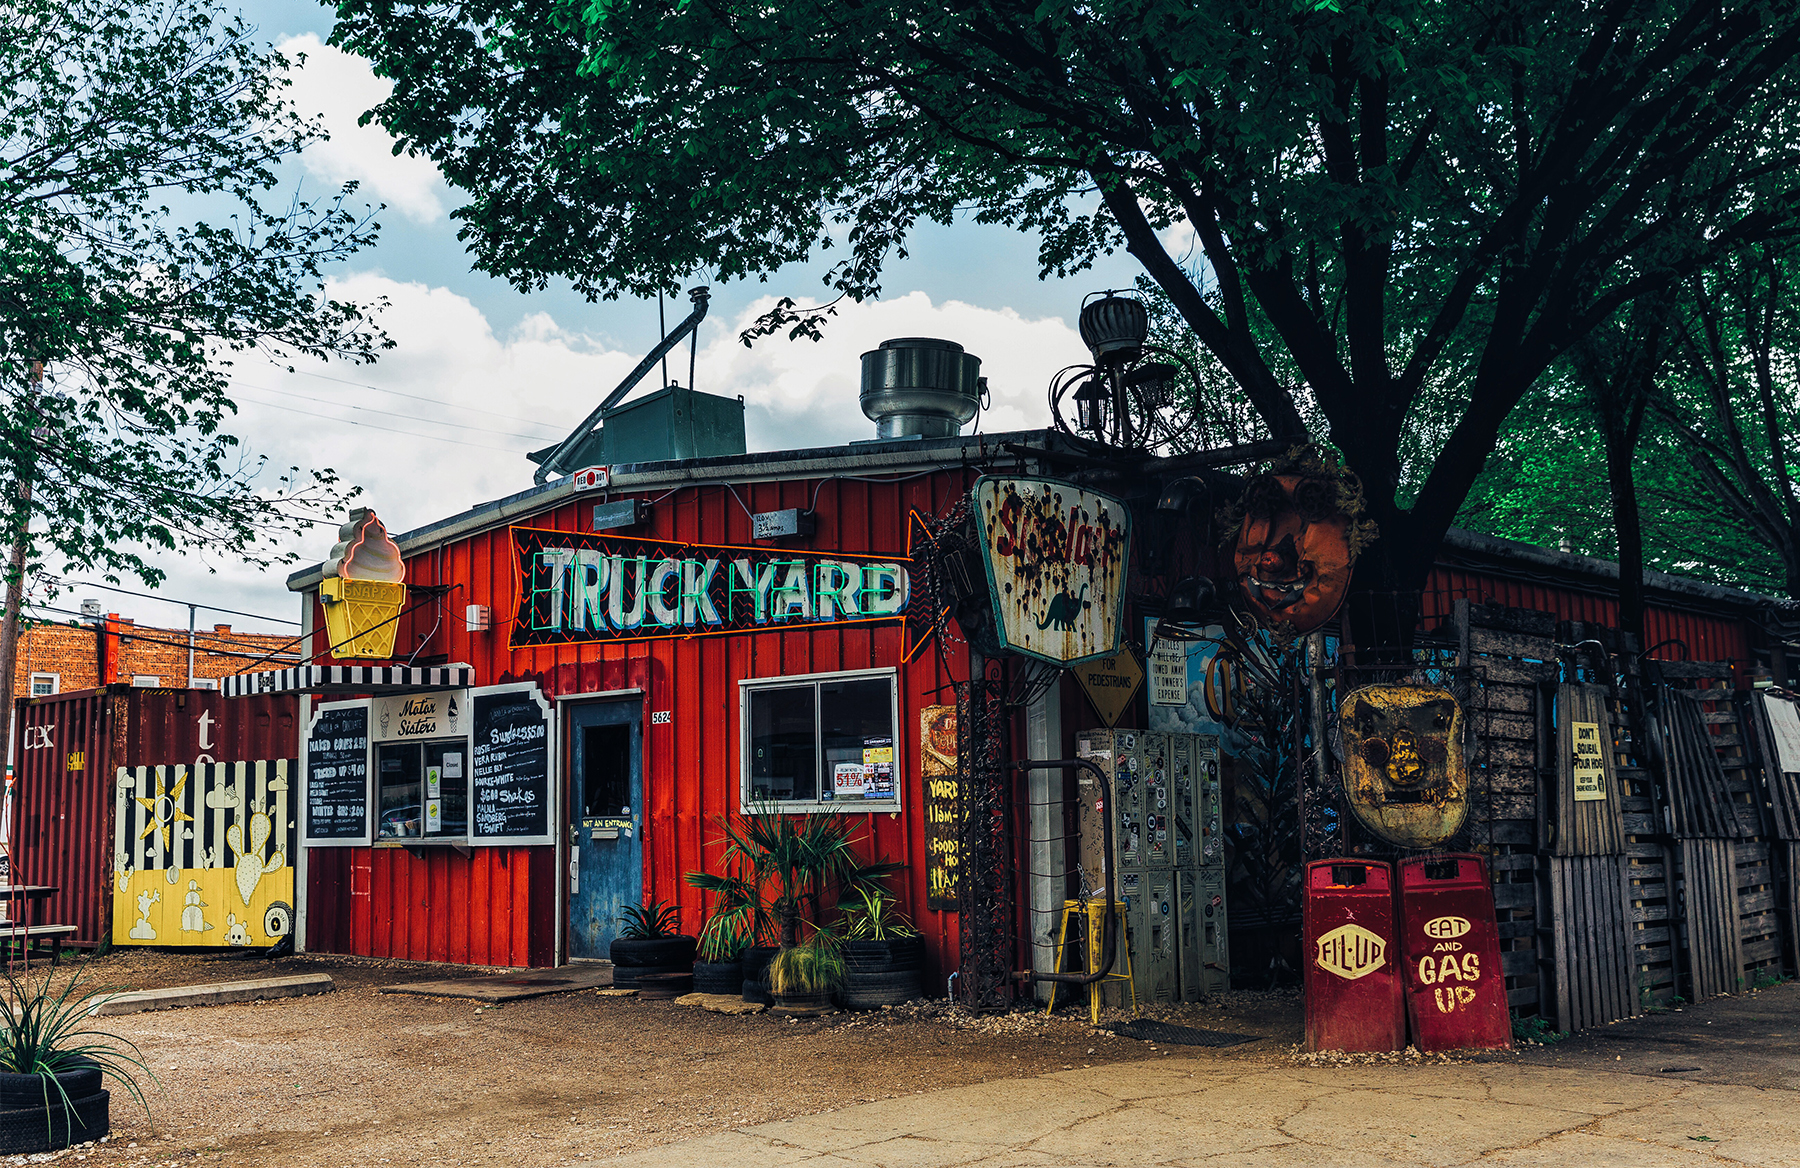 The front of the Truck Yard in Dallas.